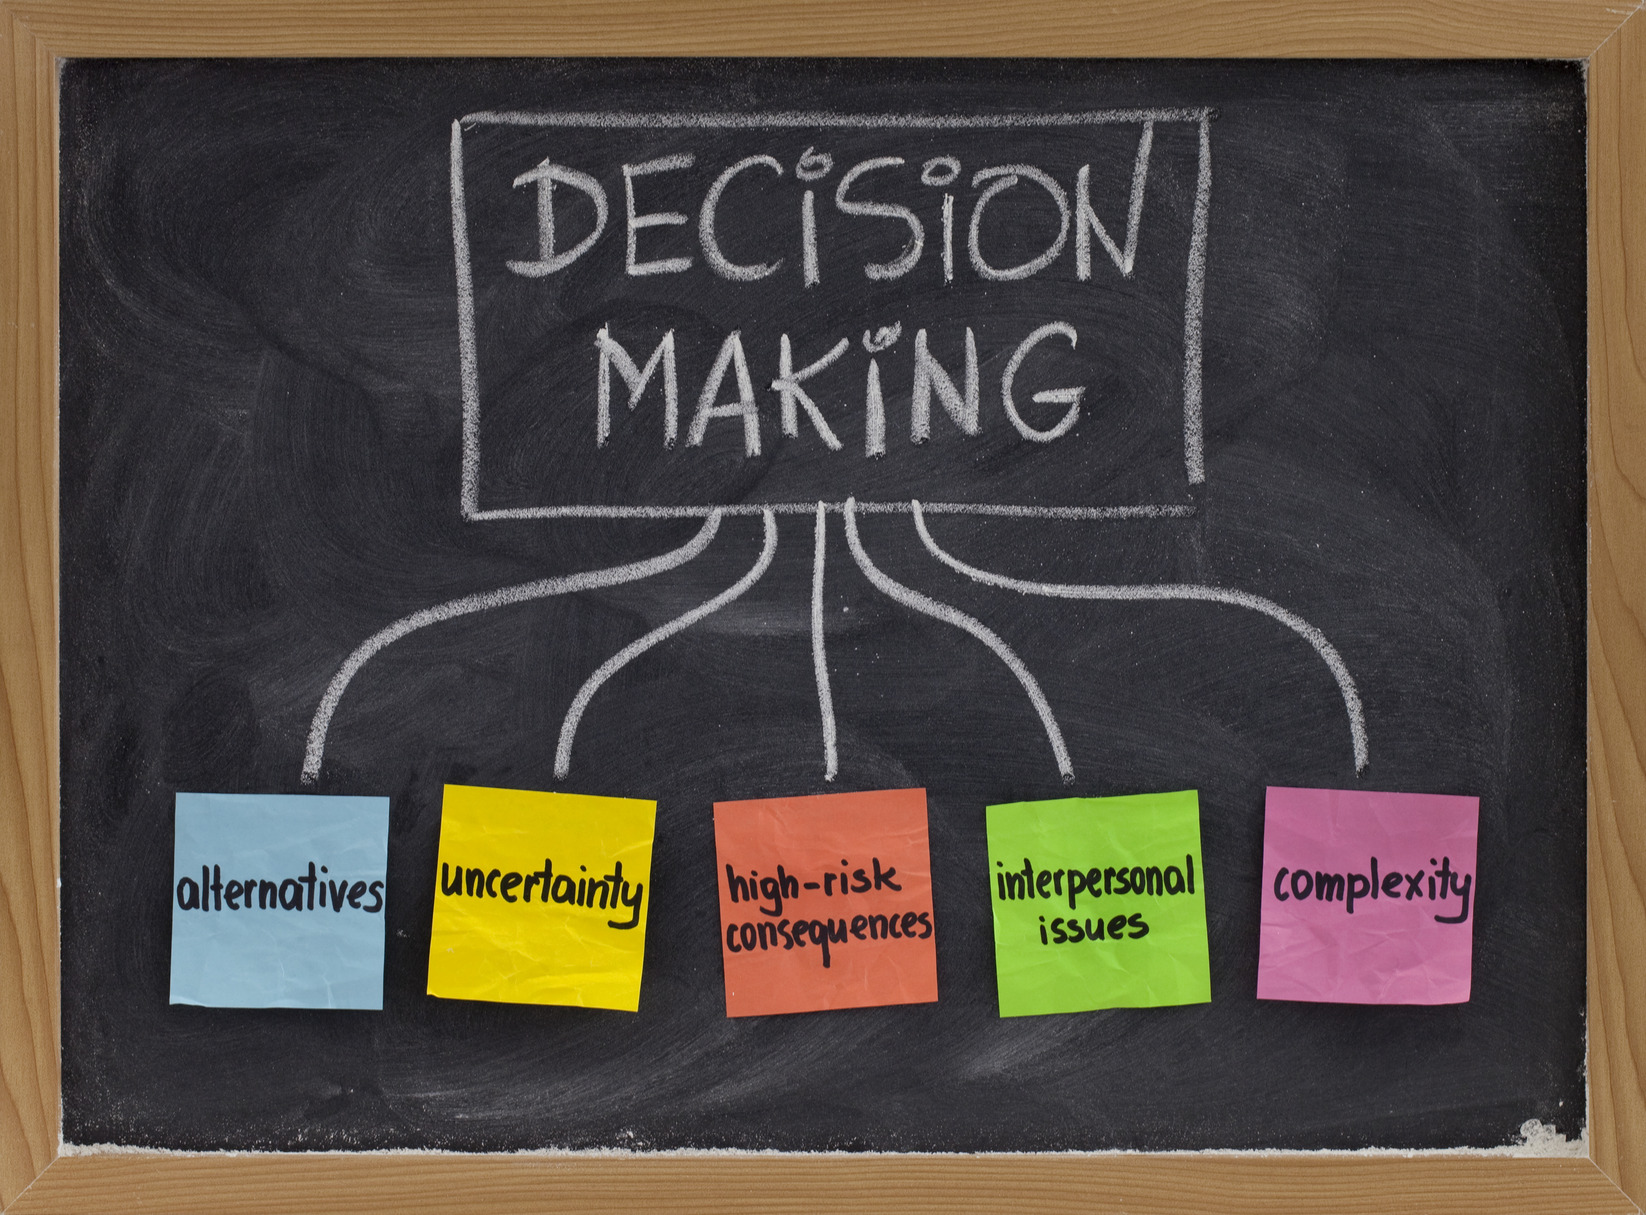 Technology Management Decisions: Decision Making Types